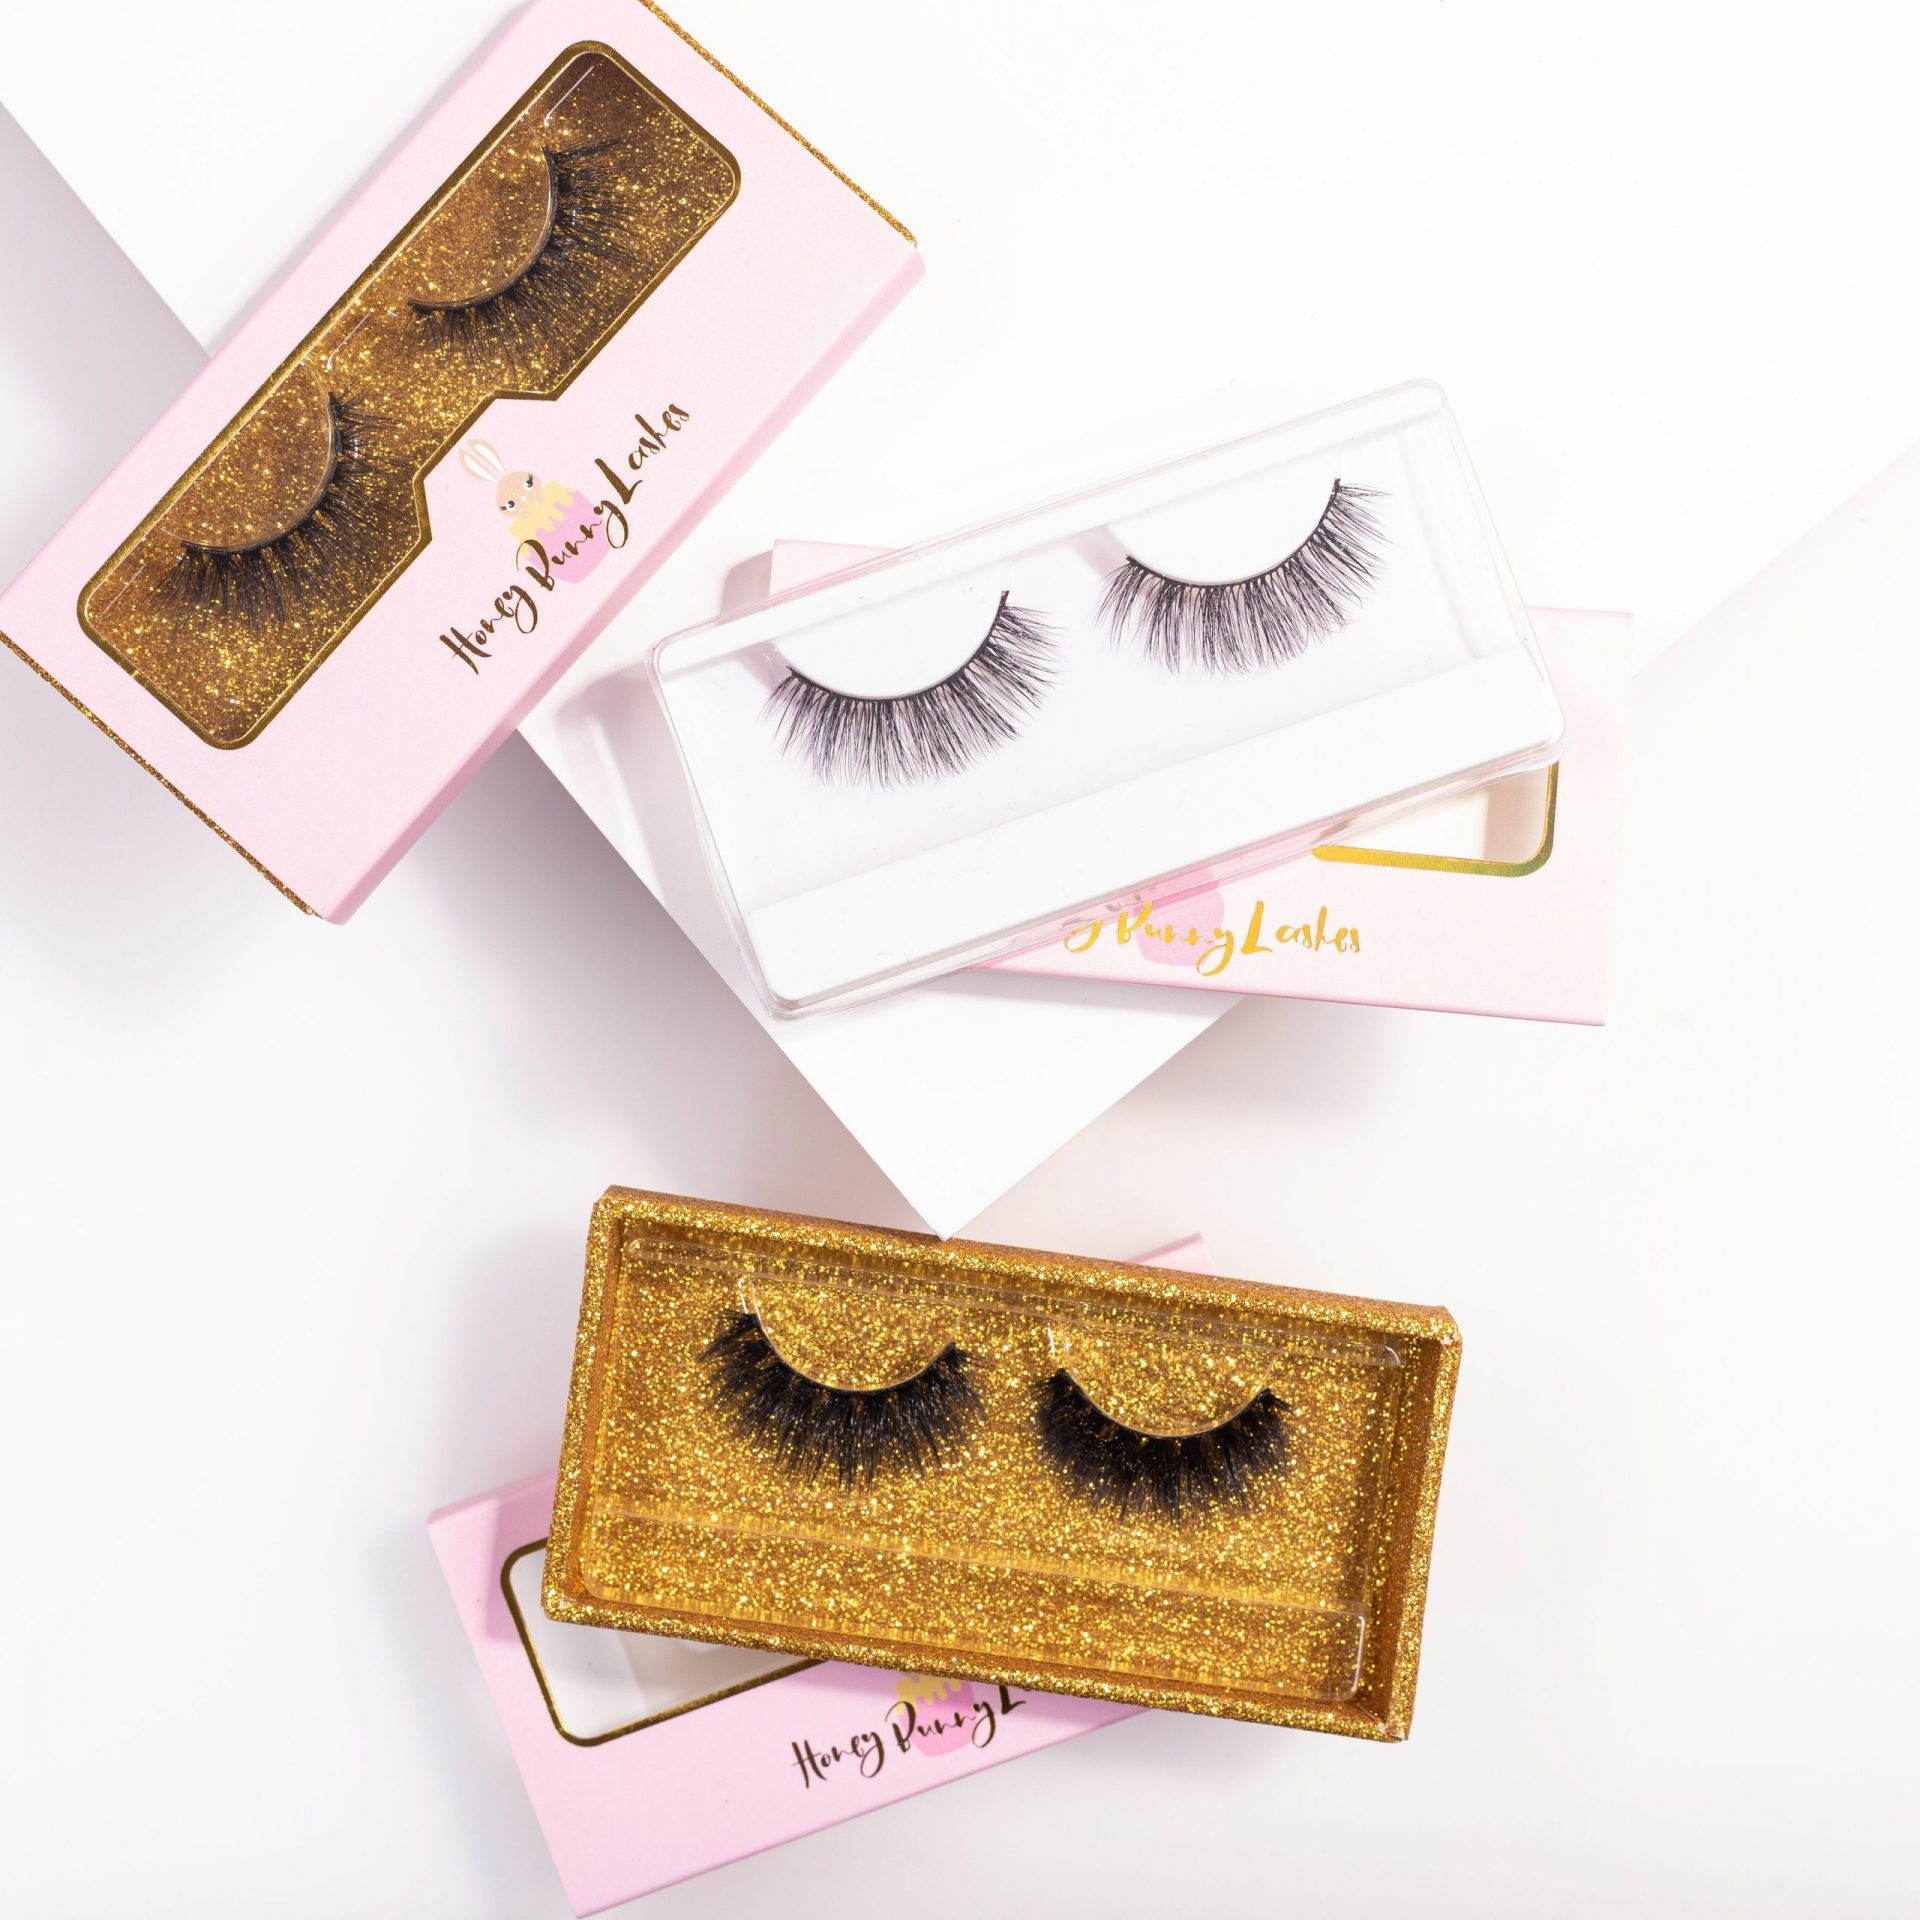 Honey Bunny VEGAN Lashes Launches – 100% Cruelty Free